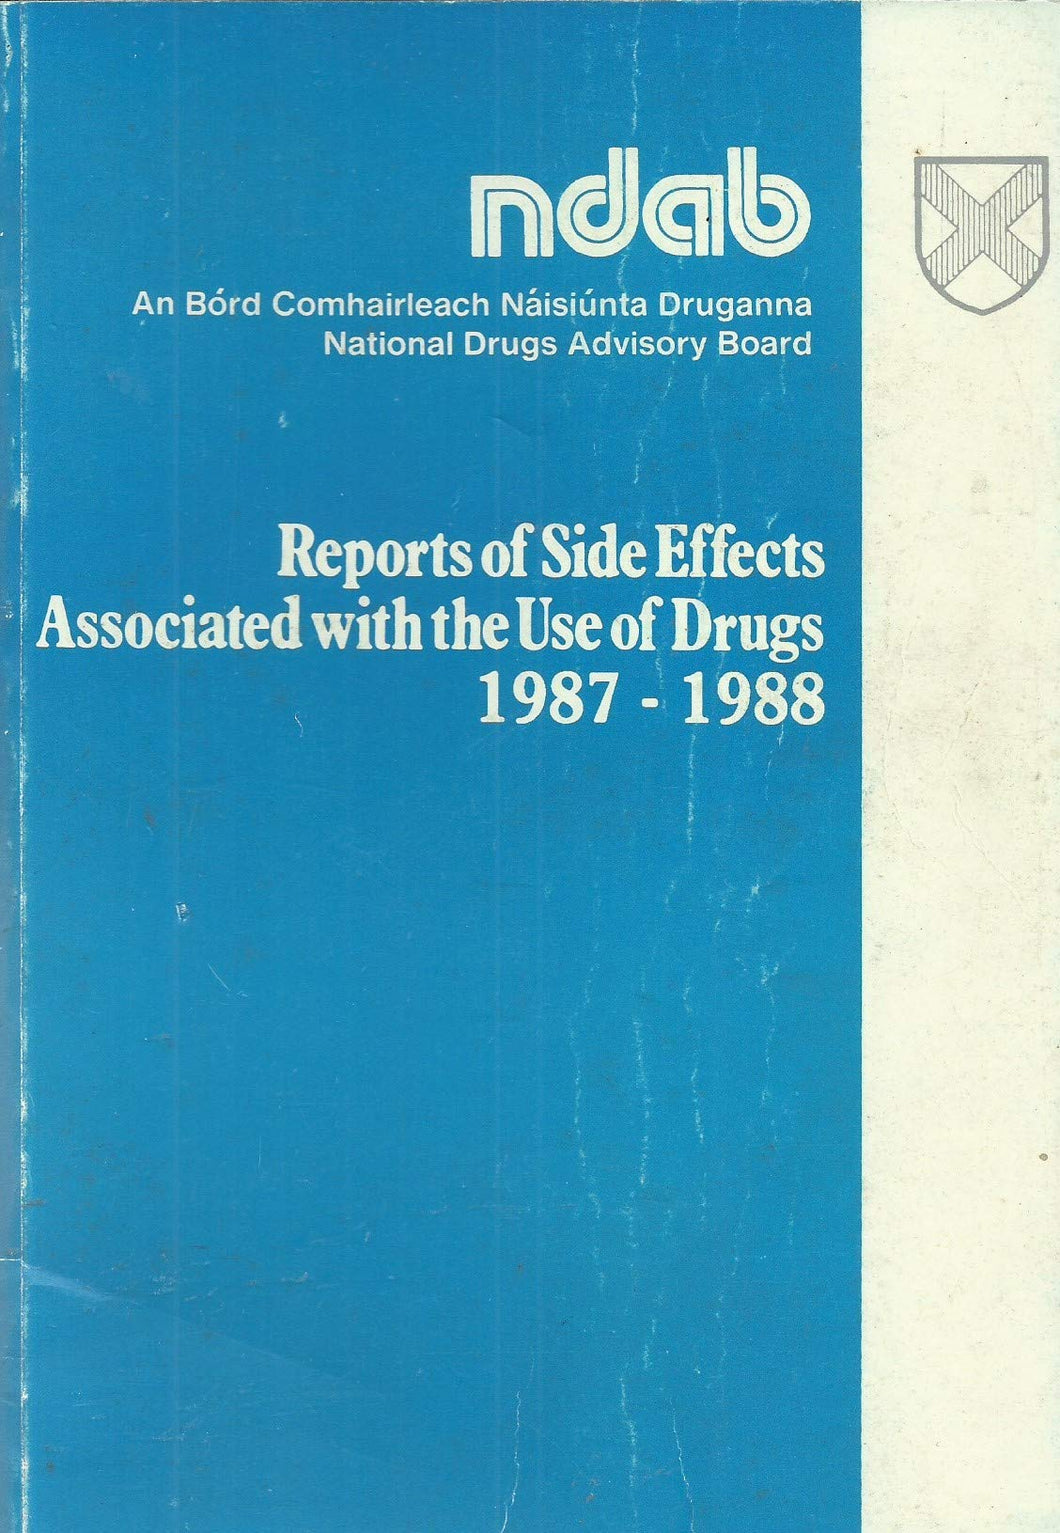 Reports of Side Effects Associated with the Use of Drugs, 1978-1988